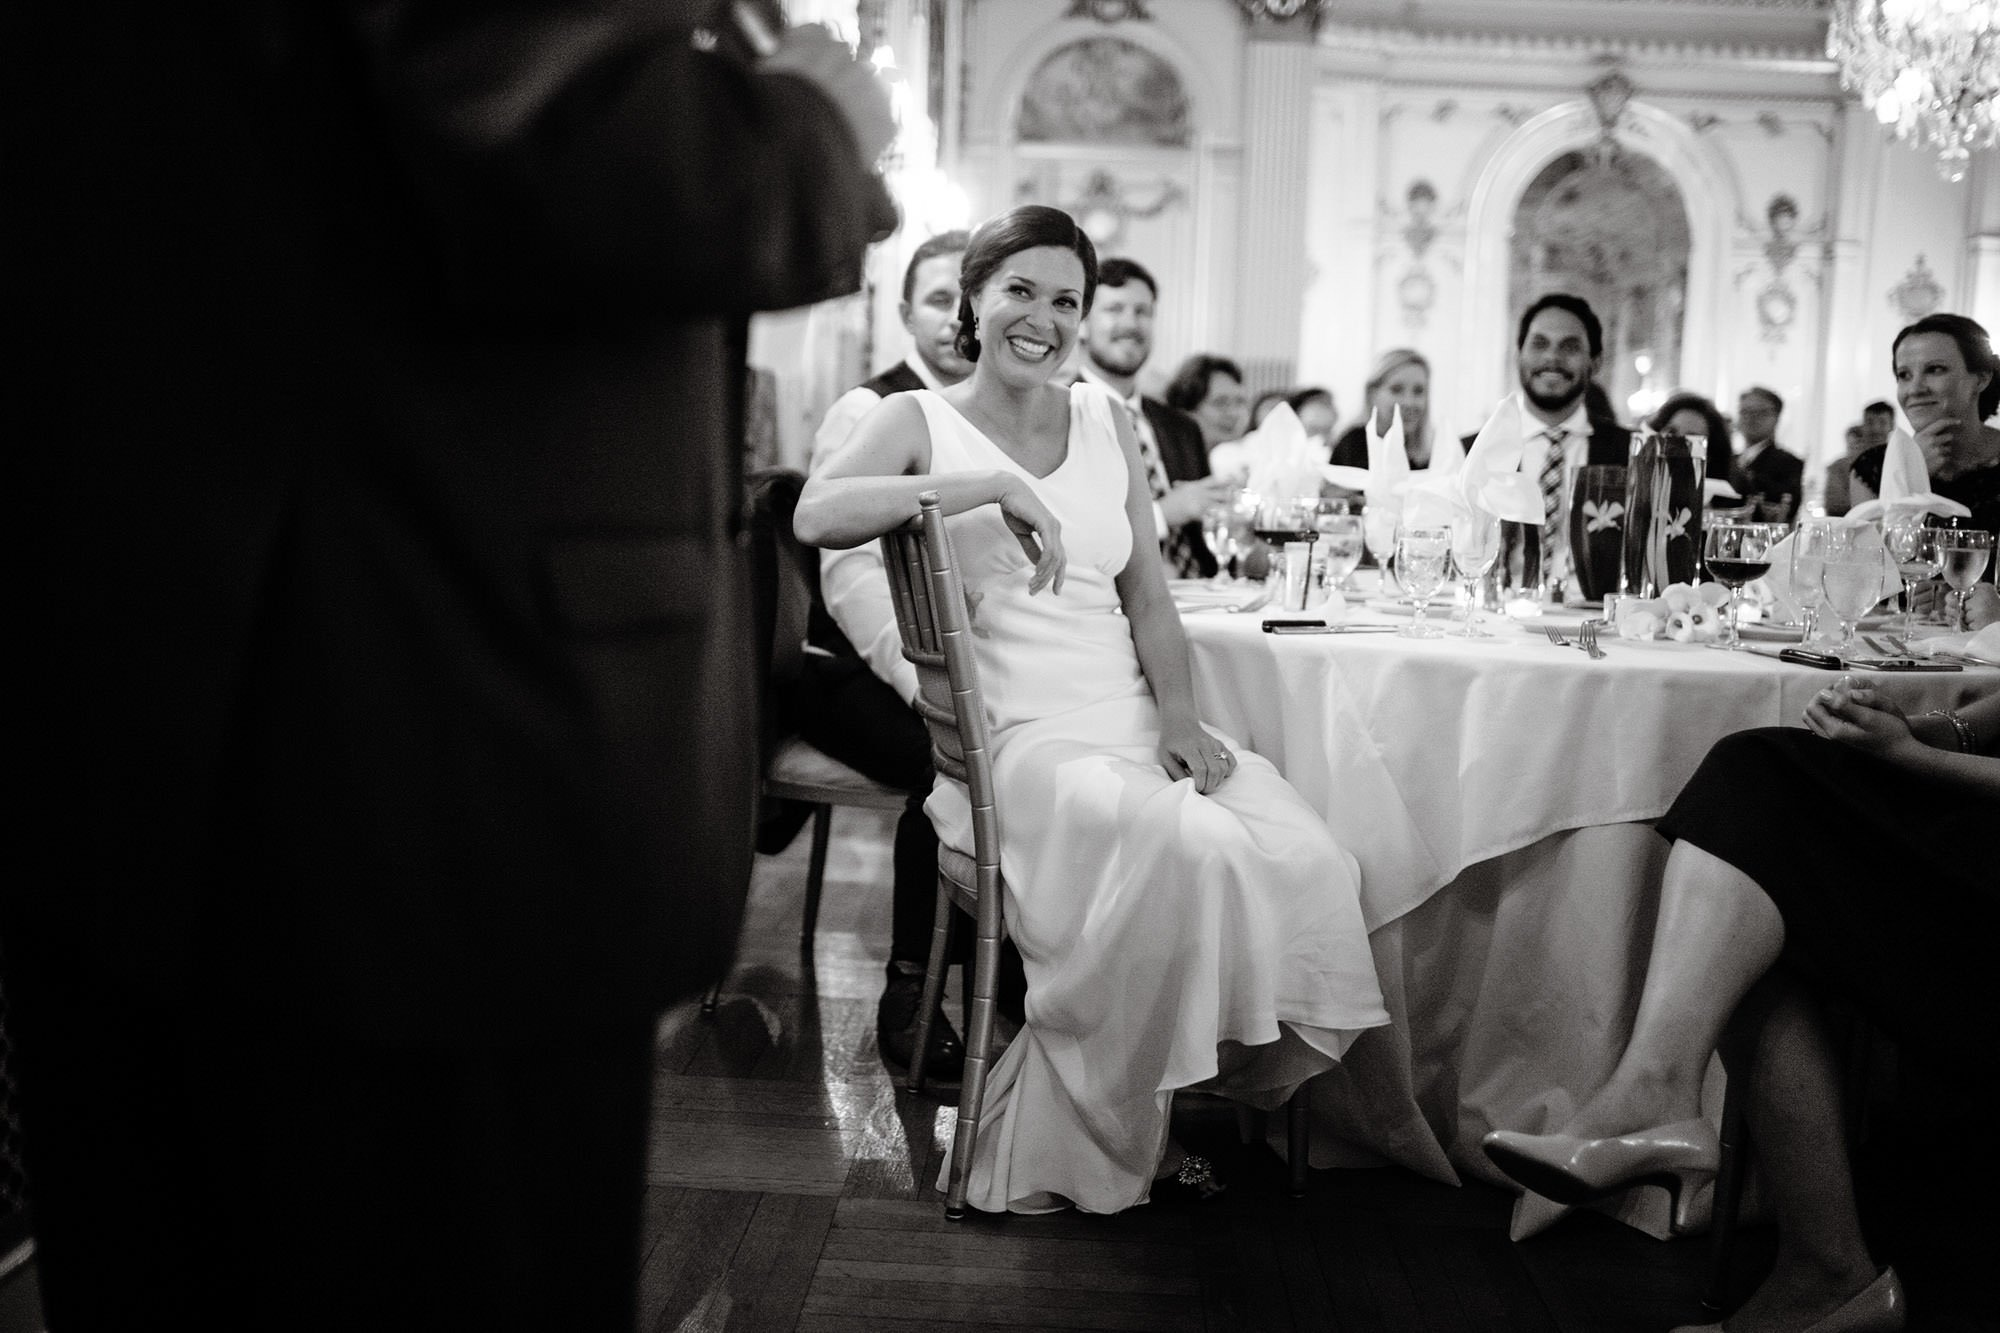 The bride listens to toasts during the wedding reception.